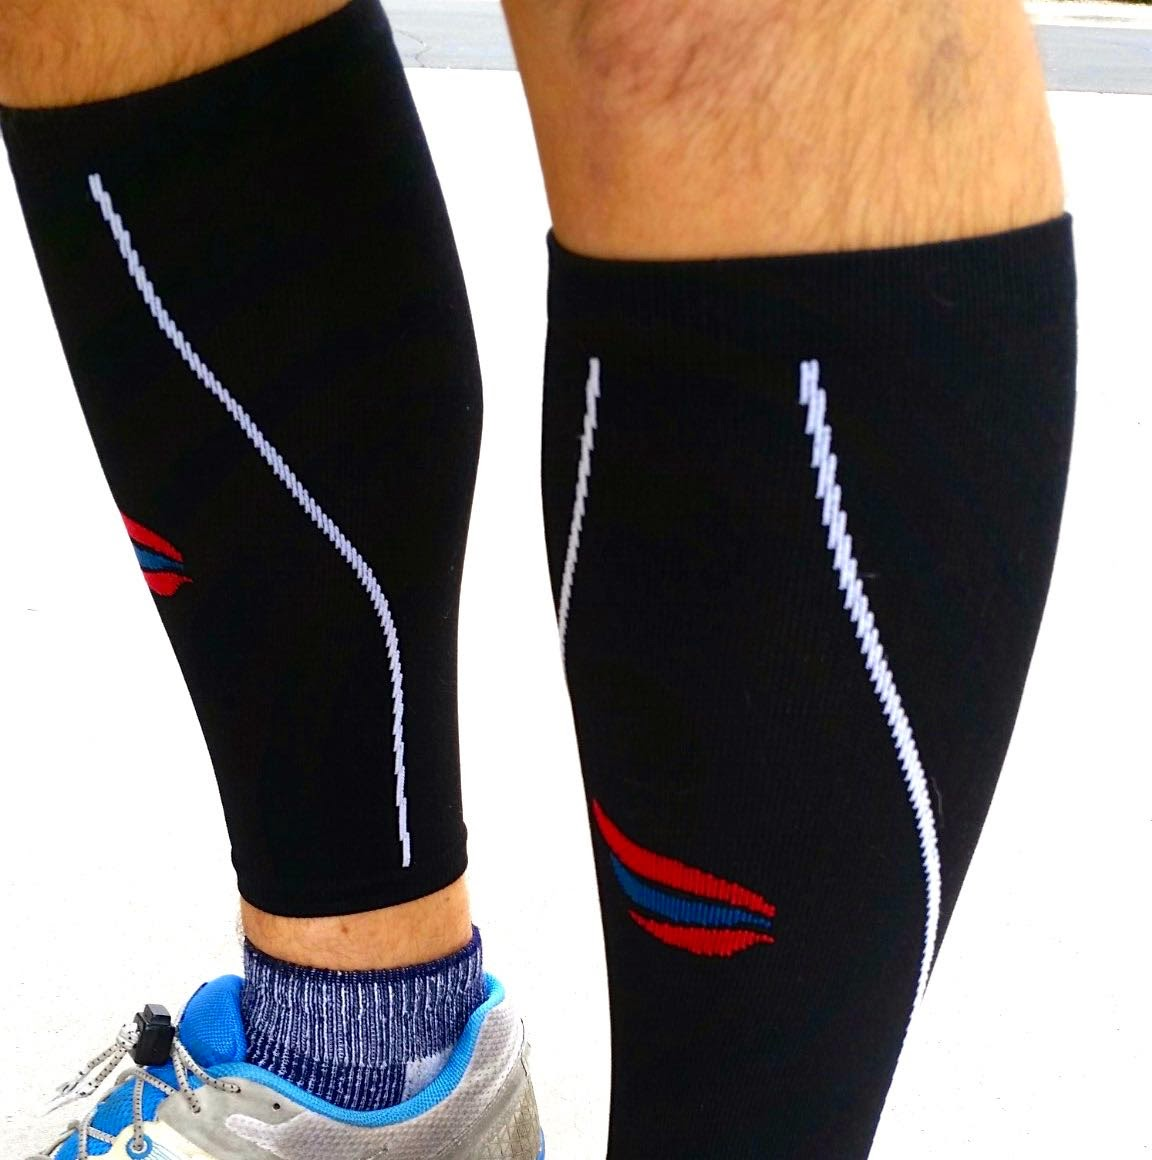 777be6a608e20d Living in THE BIG RING: RFS (Run Forever Sports) Compression Calf ...